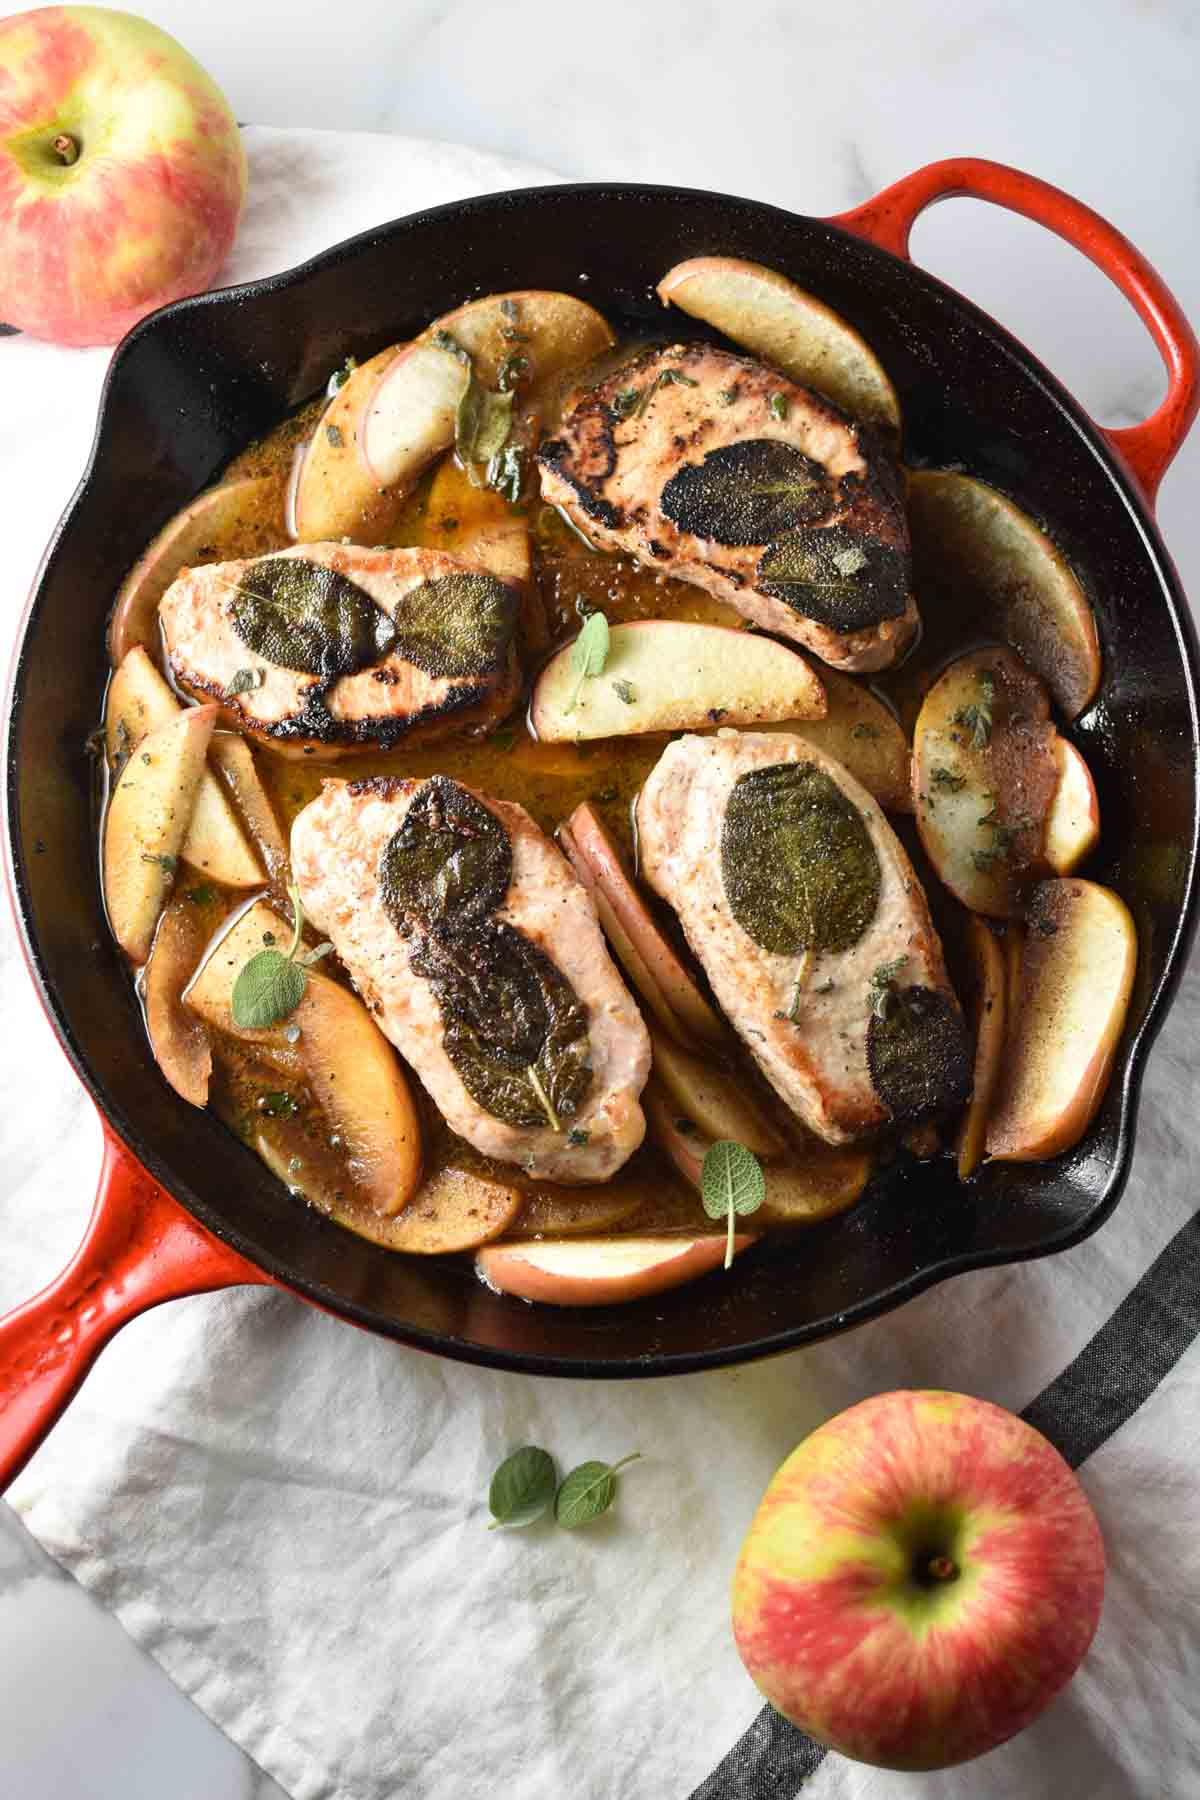 Pork chops with sage in a cast iron pan with apples and sauce